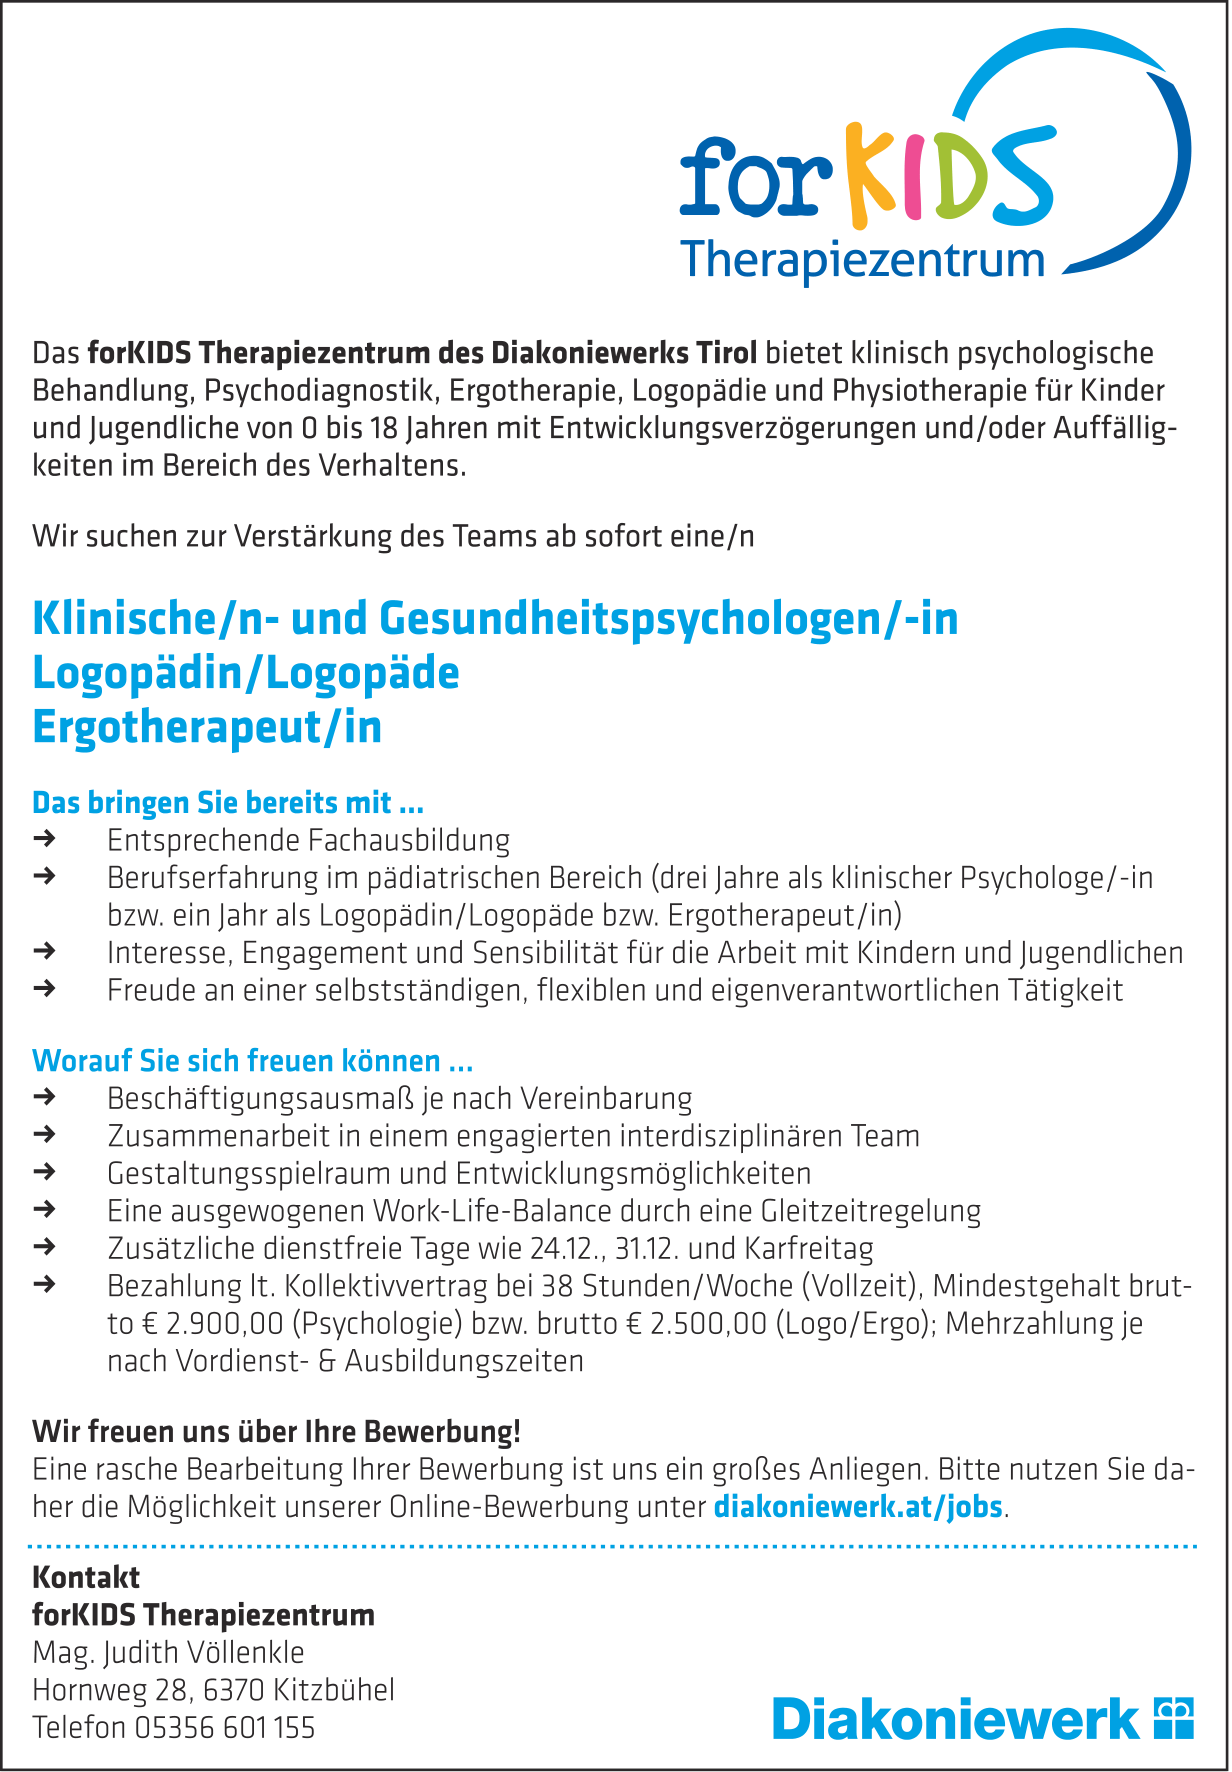 forKIDS Therapiezentrum sucht...